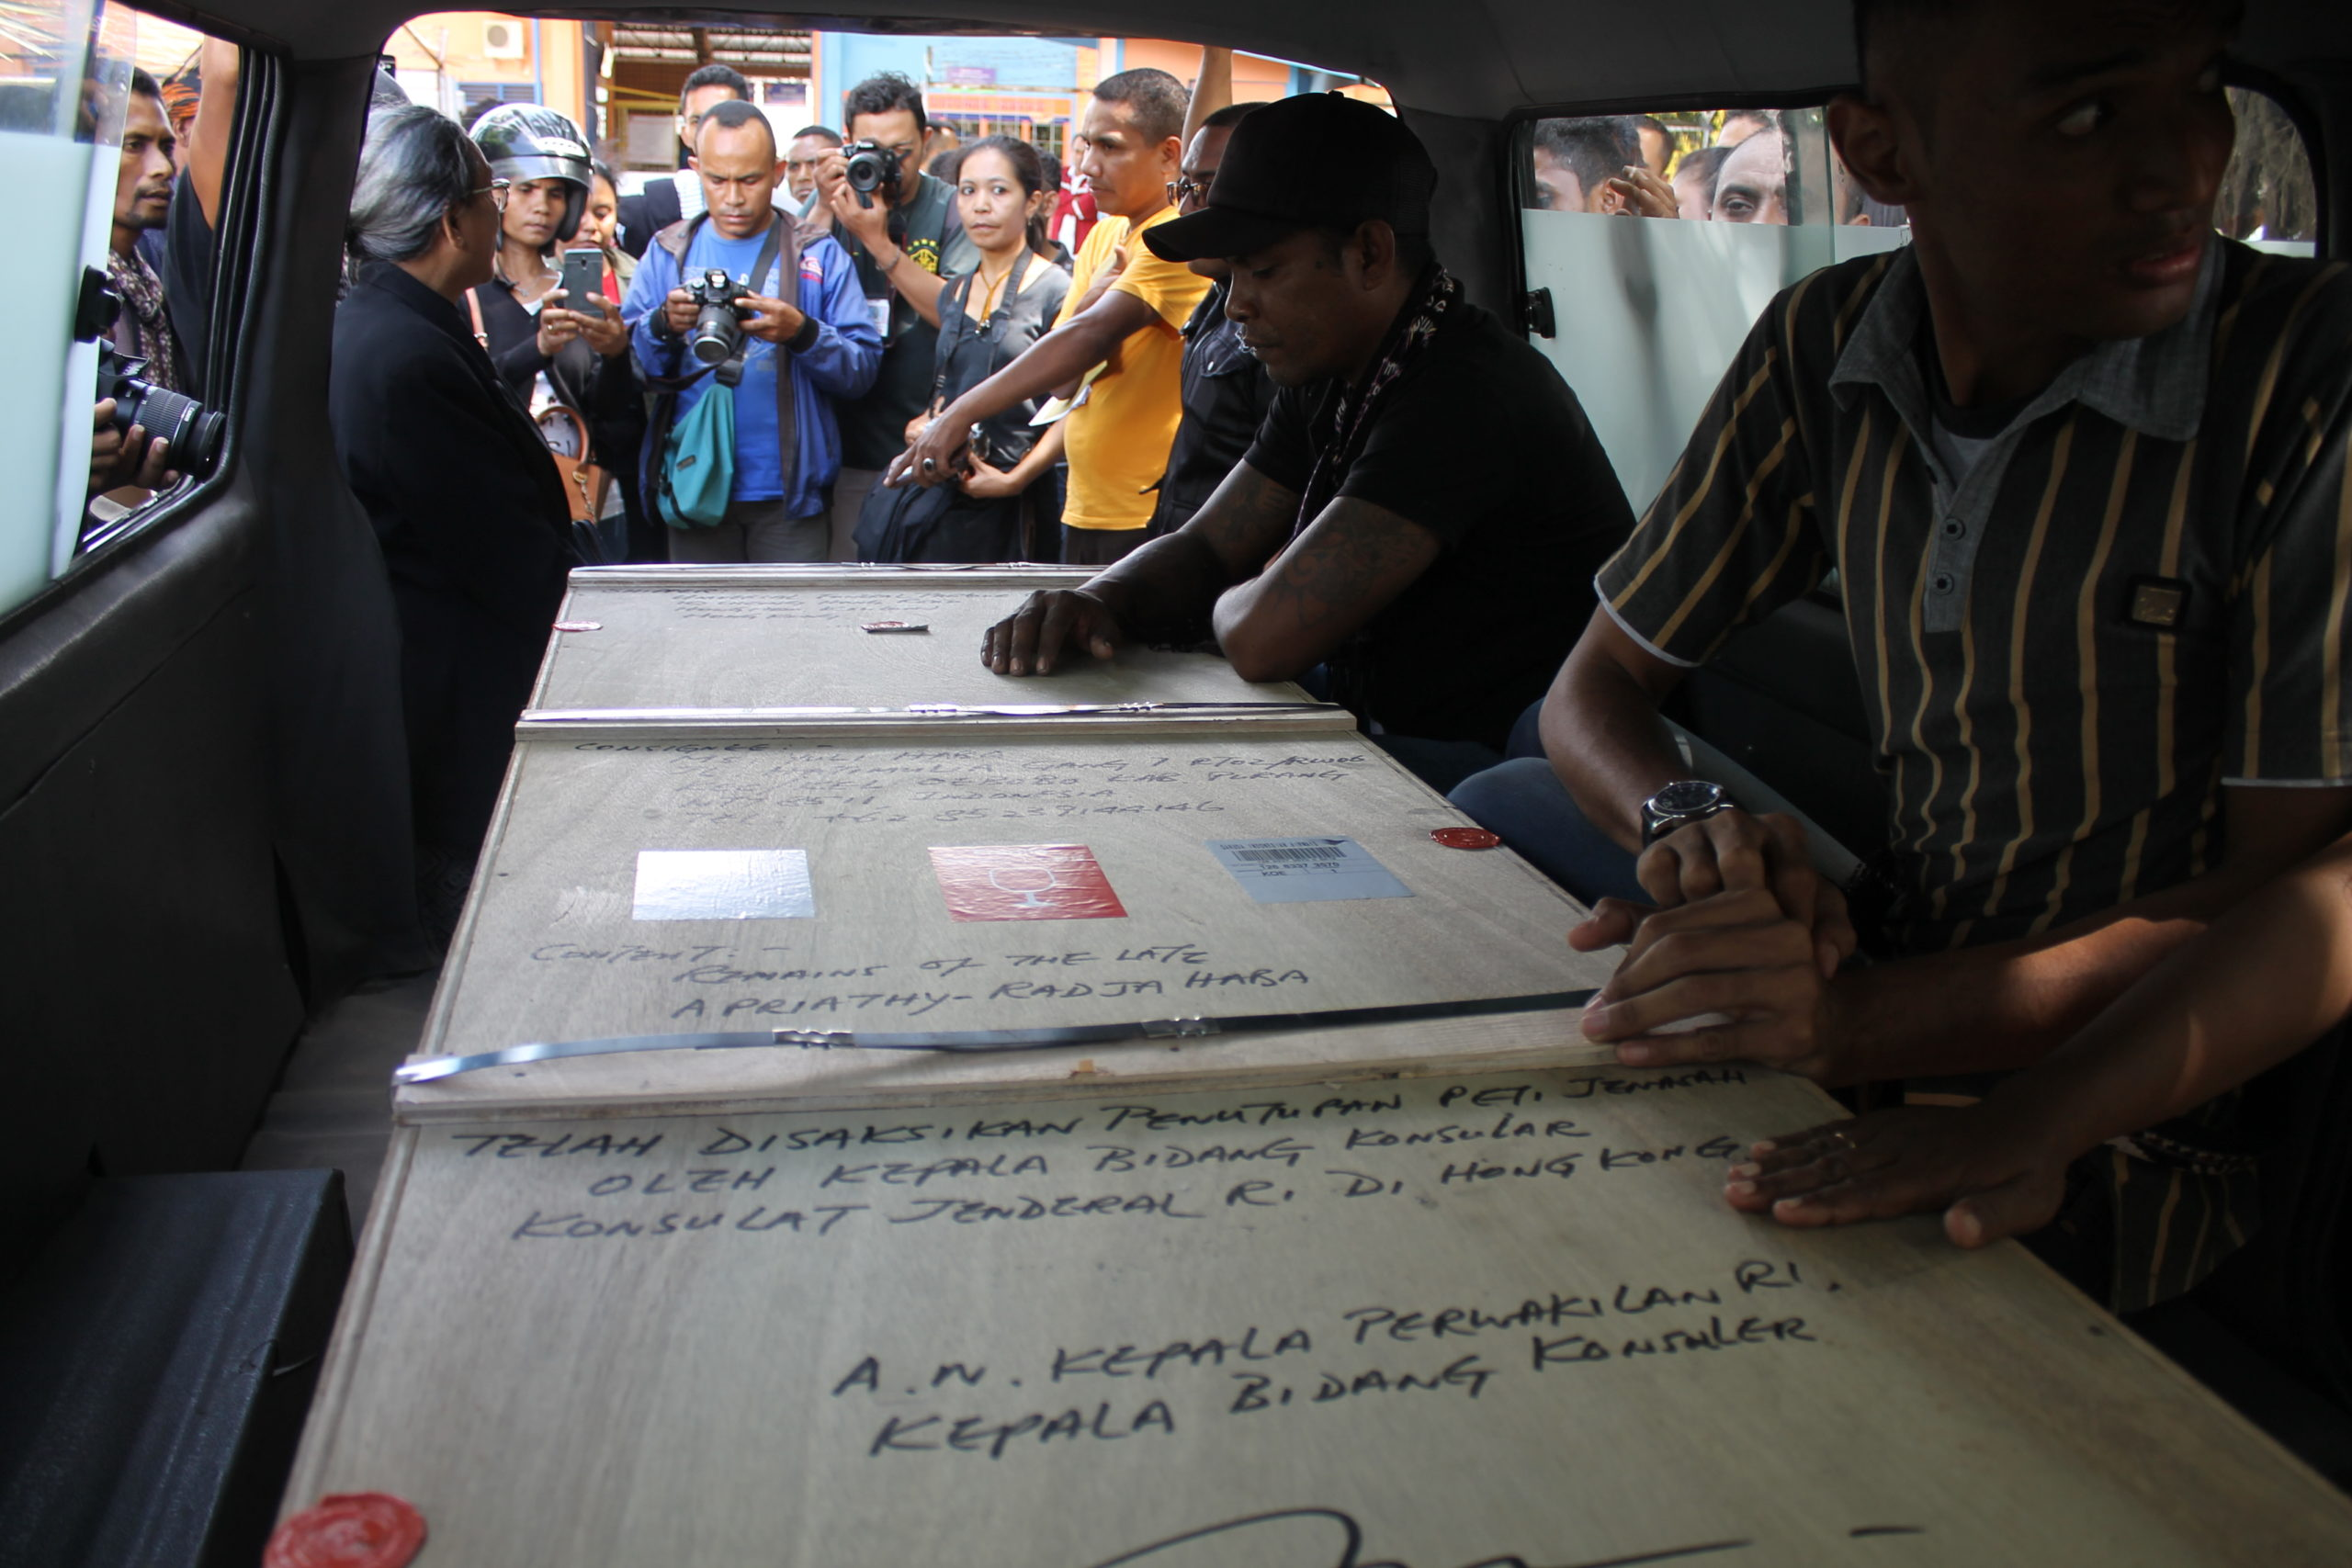 indonesia_karen_campbell_nelson_coffin_in_hearse.jpeg